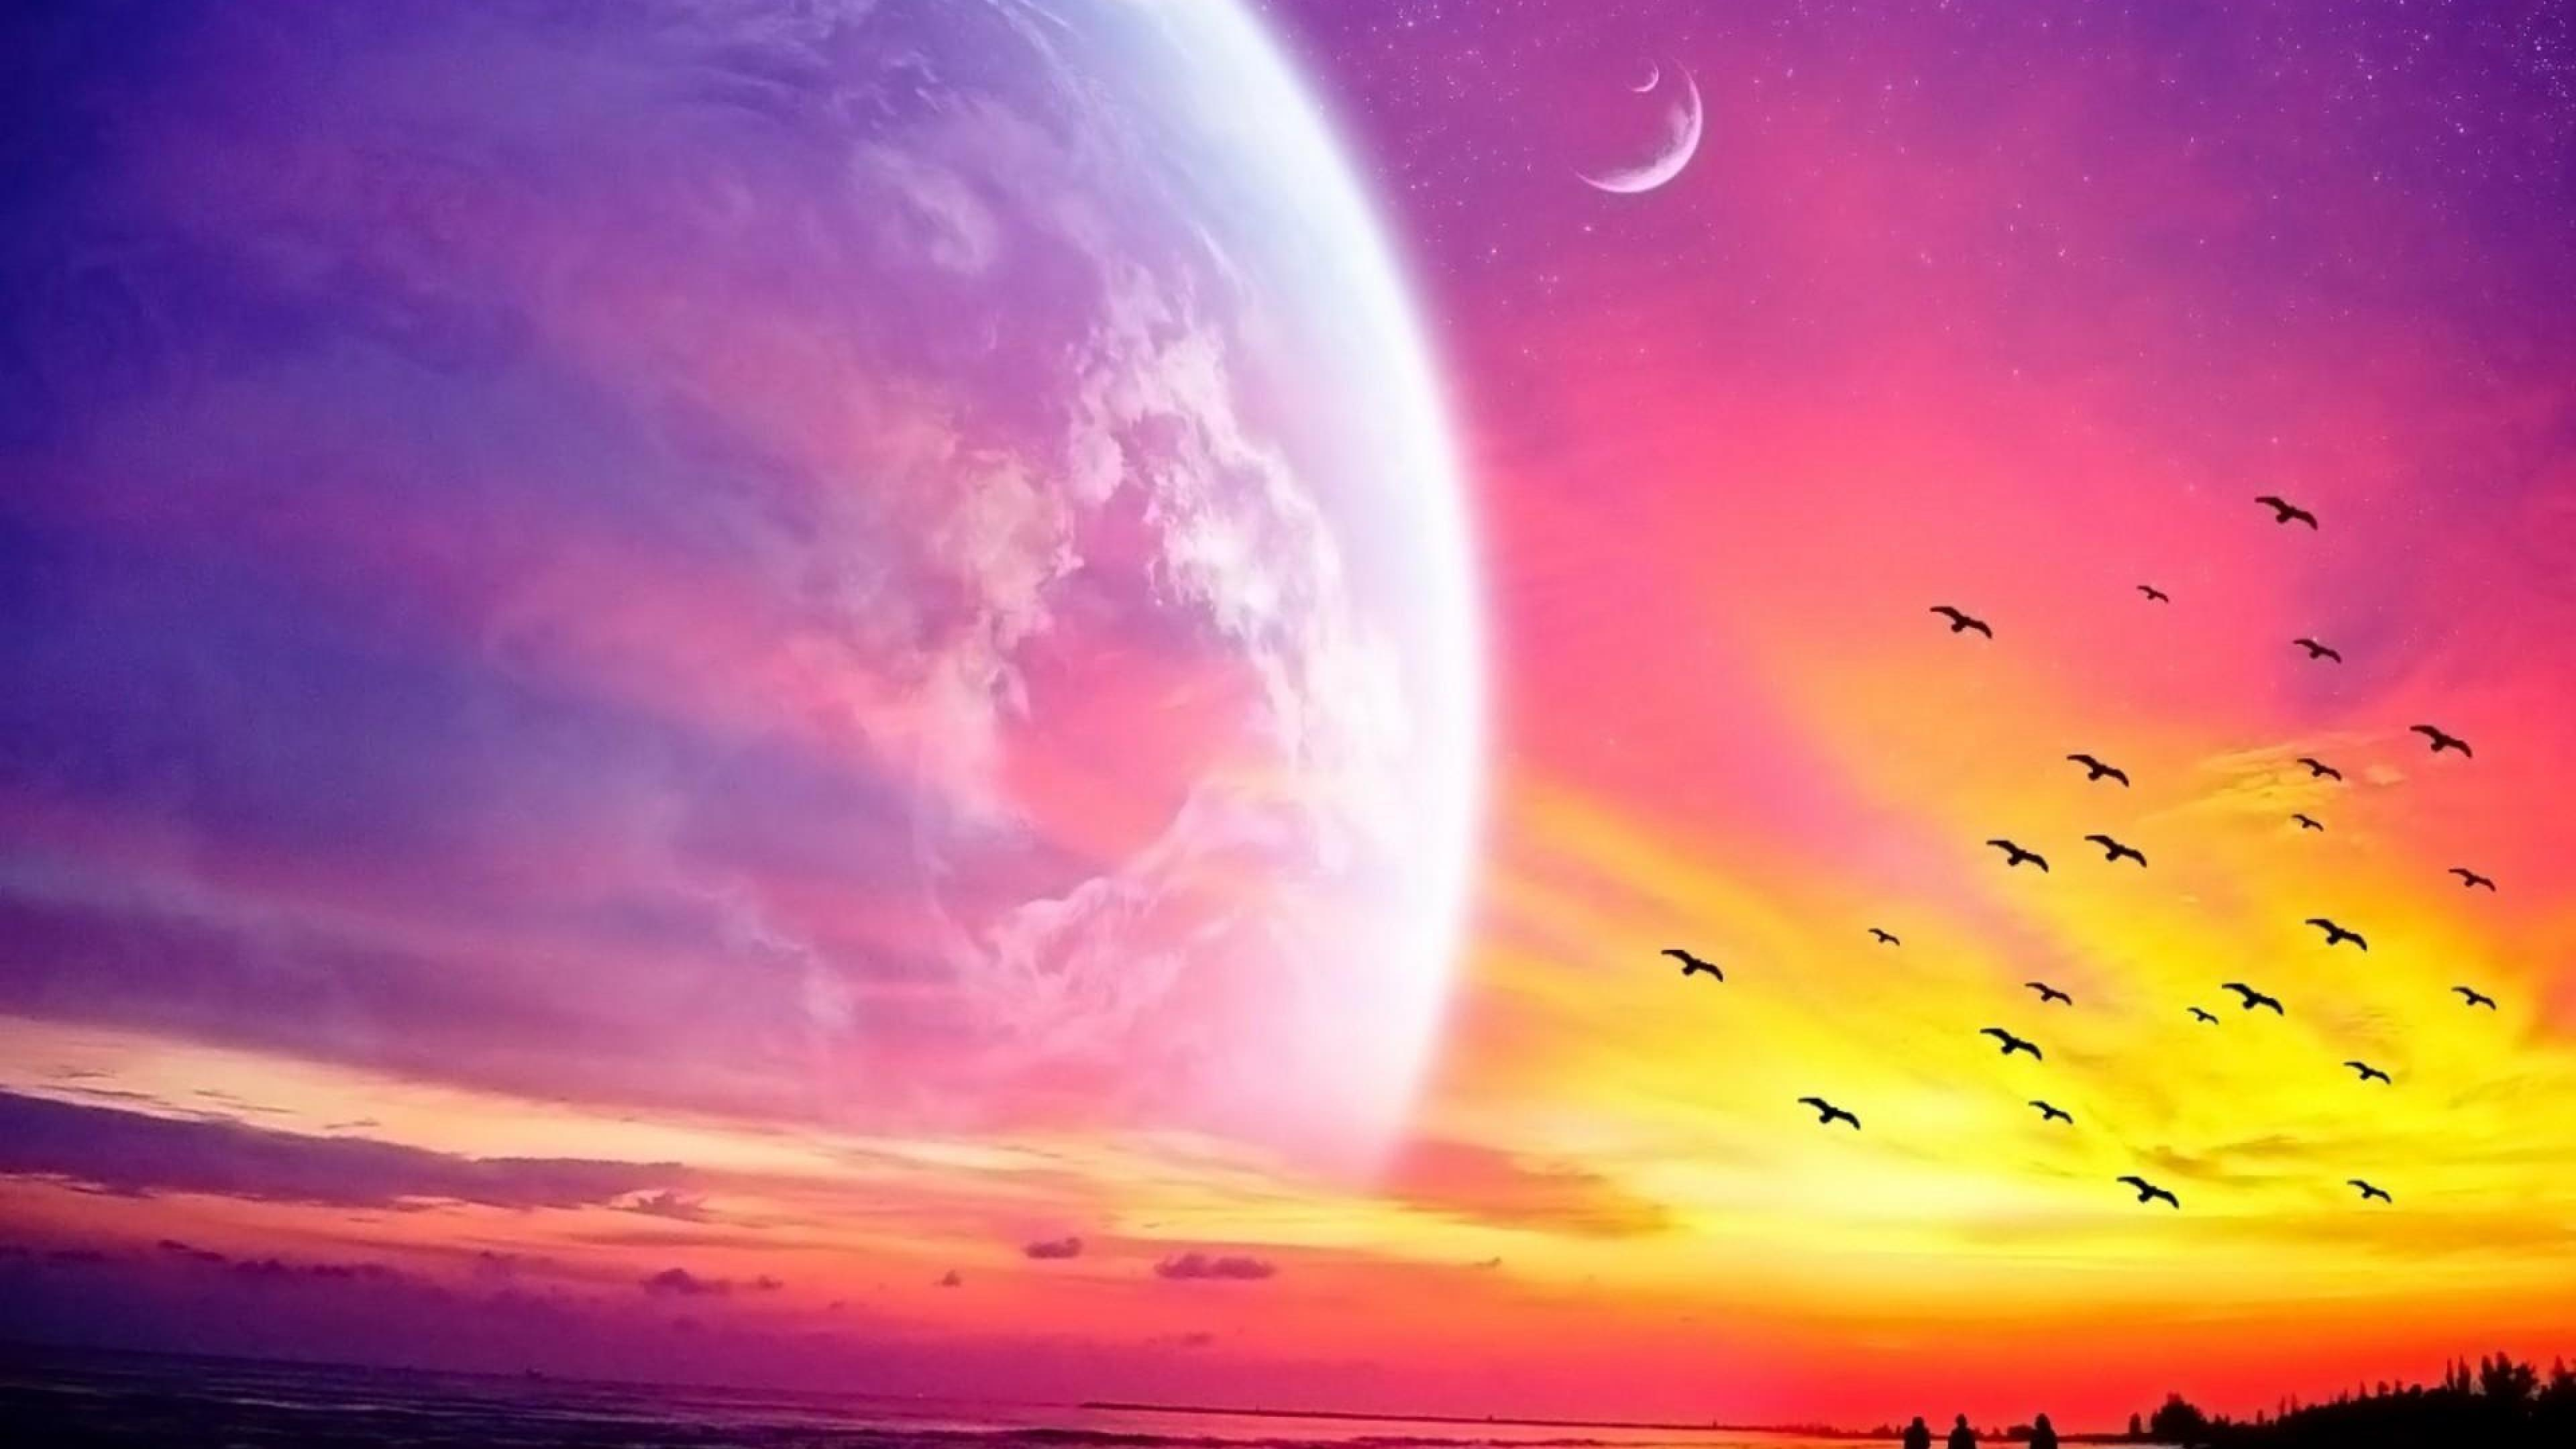 Colorful Sunsets Wallpapers - Wallpaper Cave